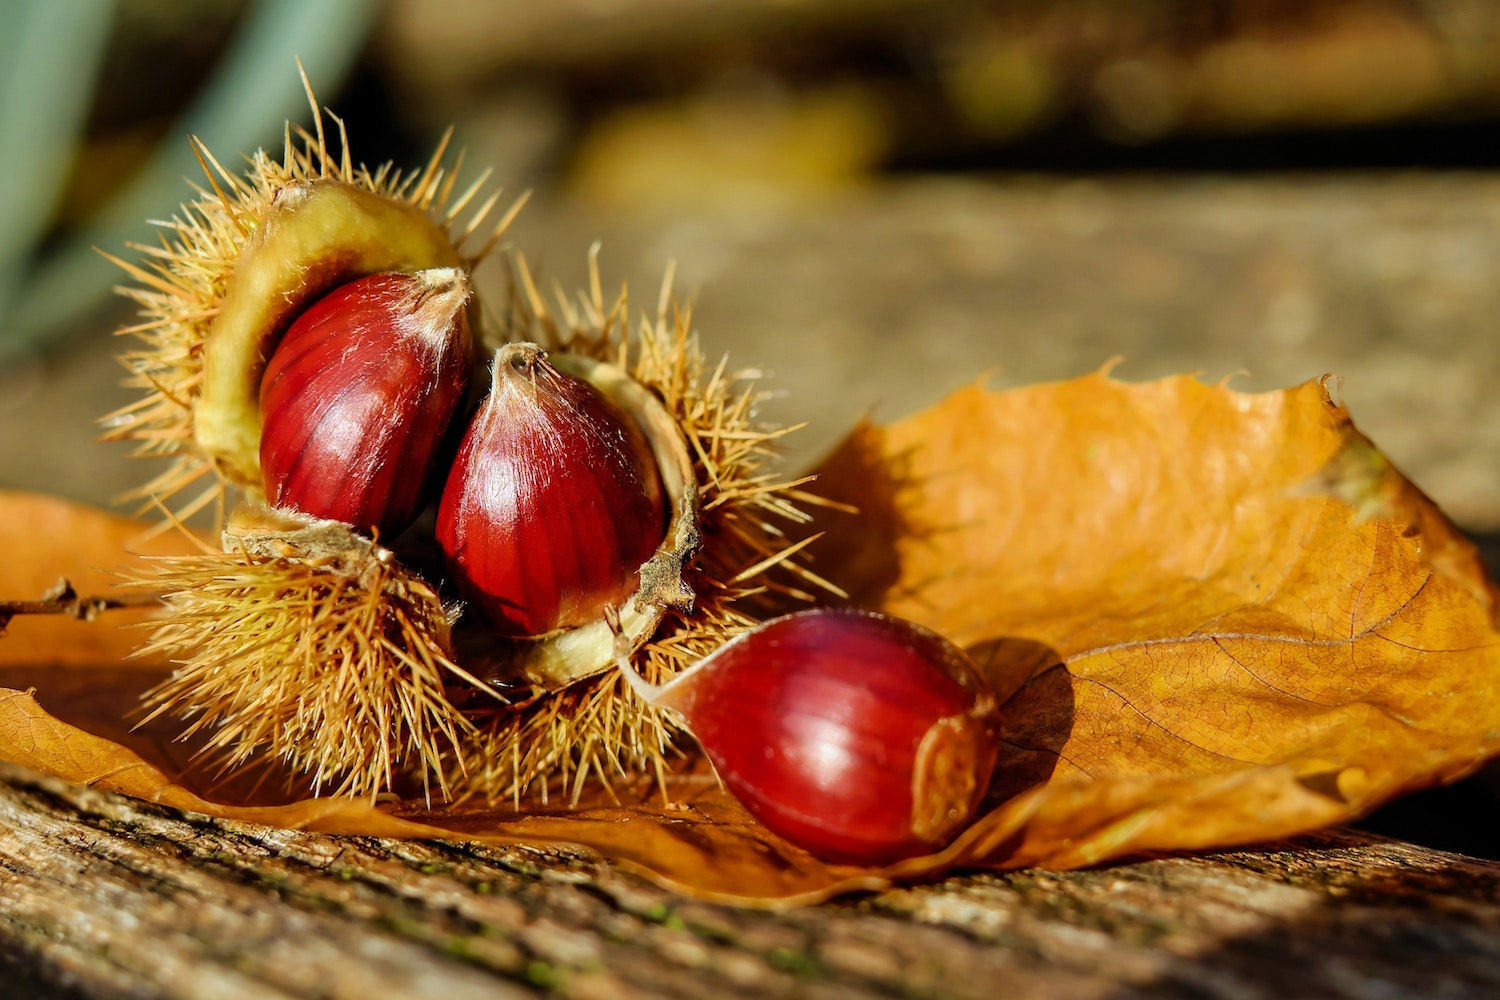 blurred-background-chestnuts-close-up-219737